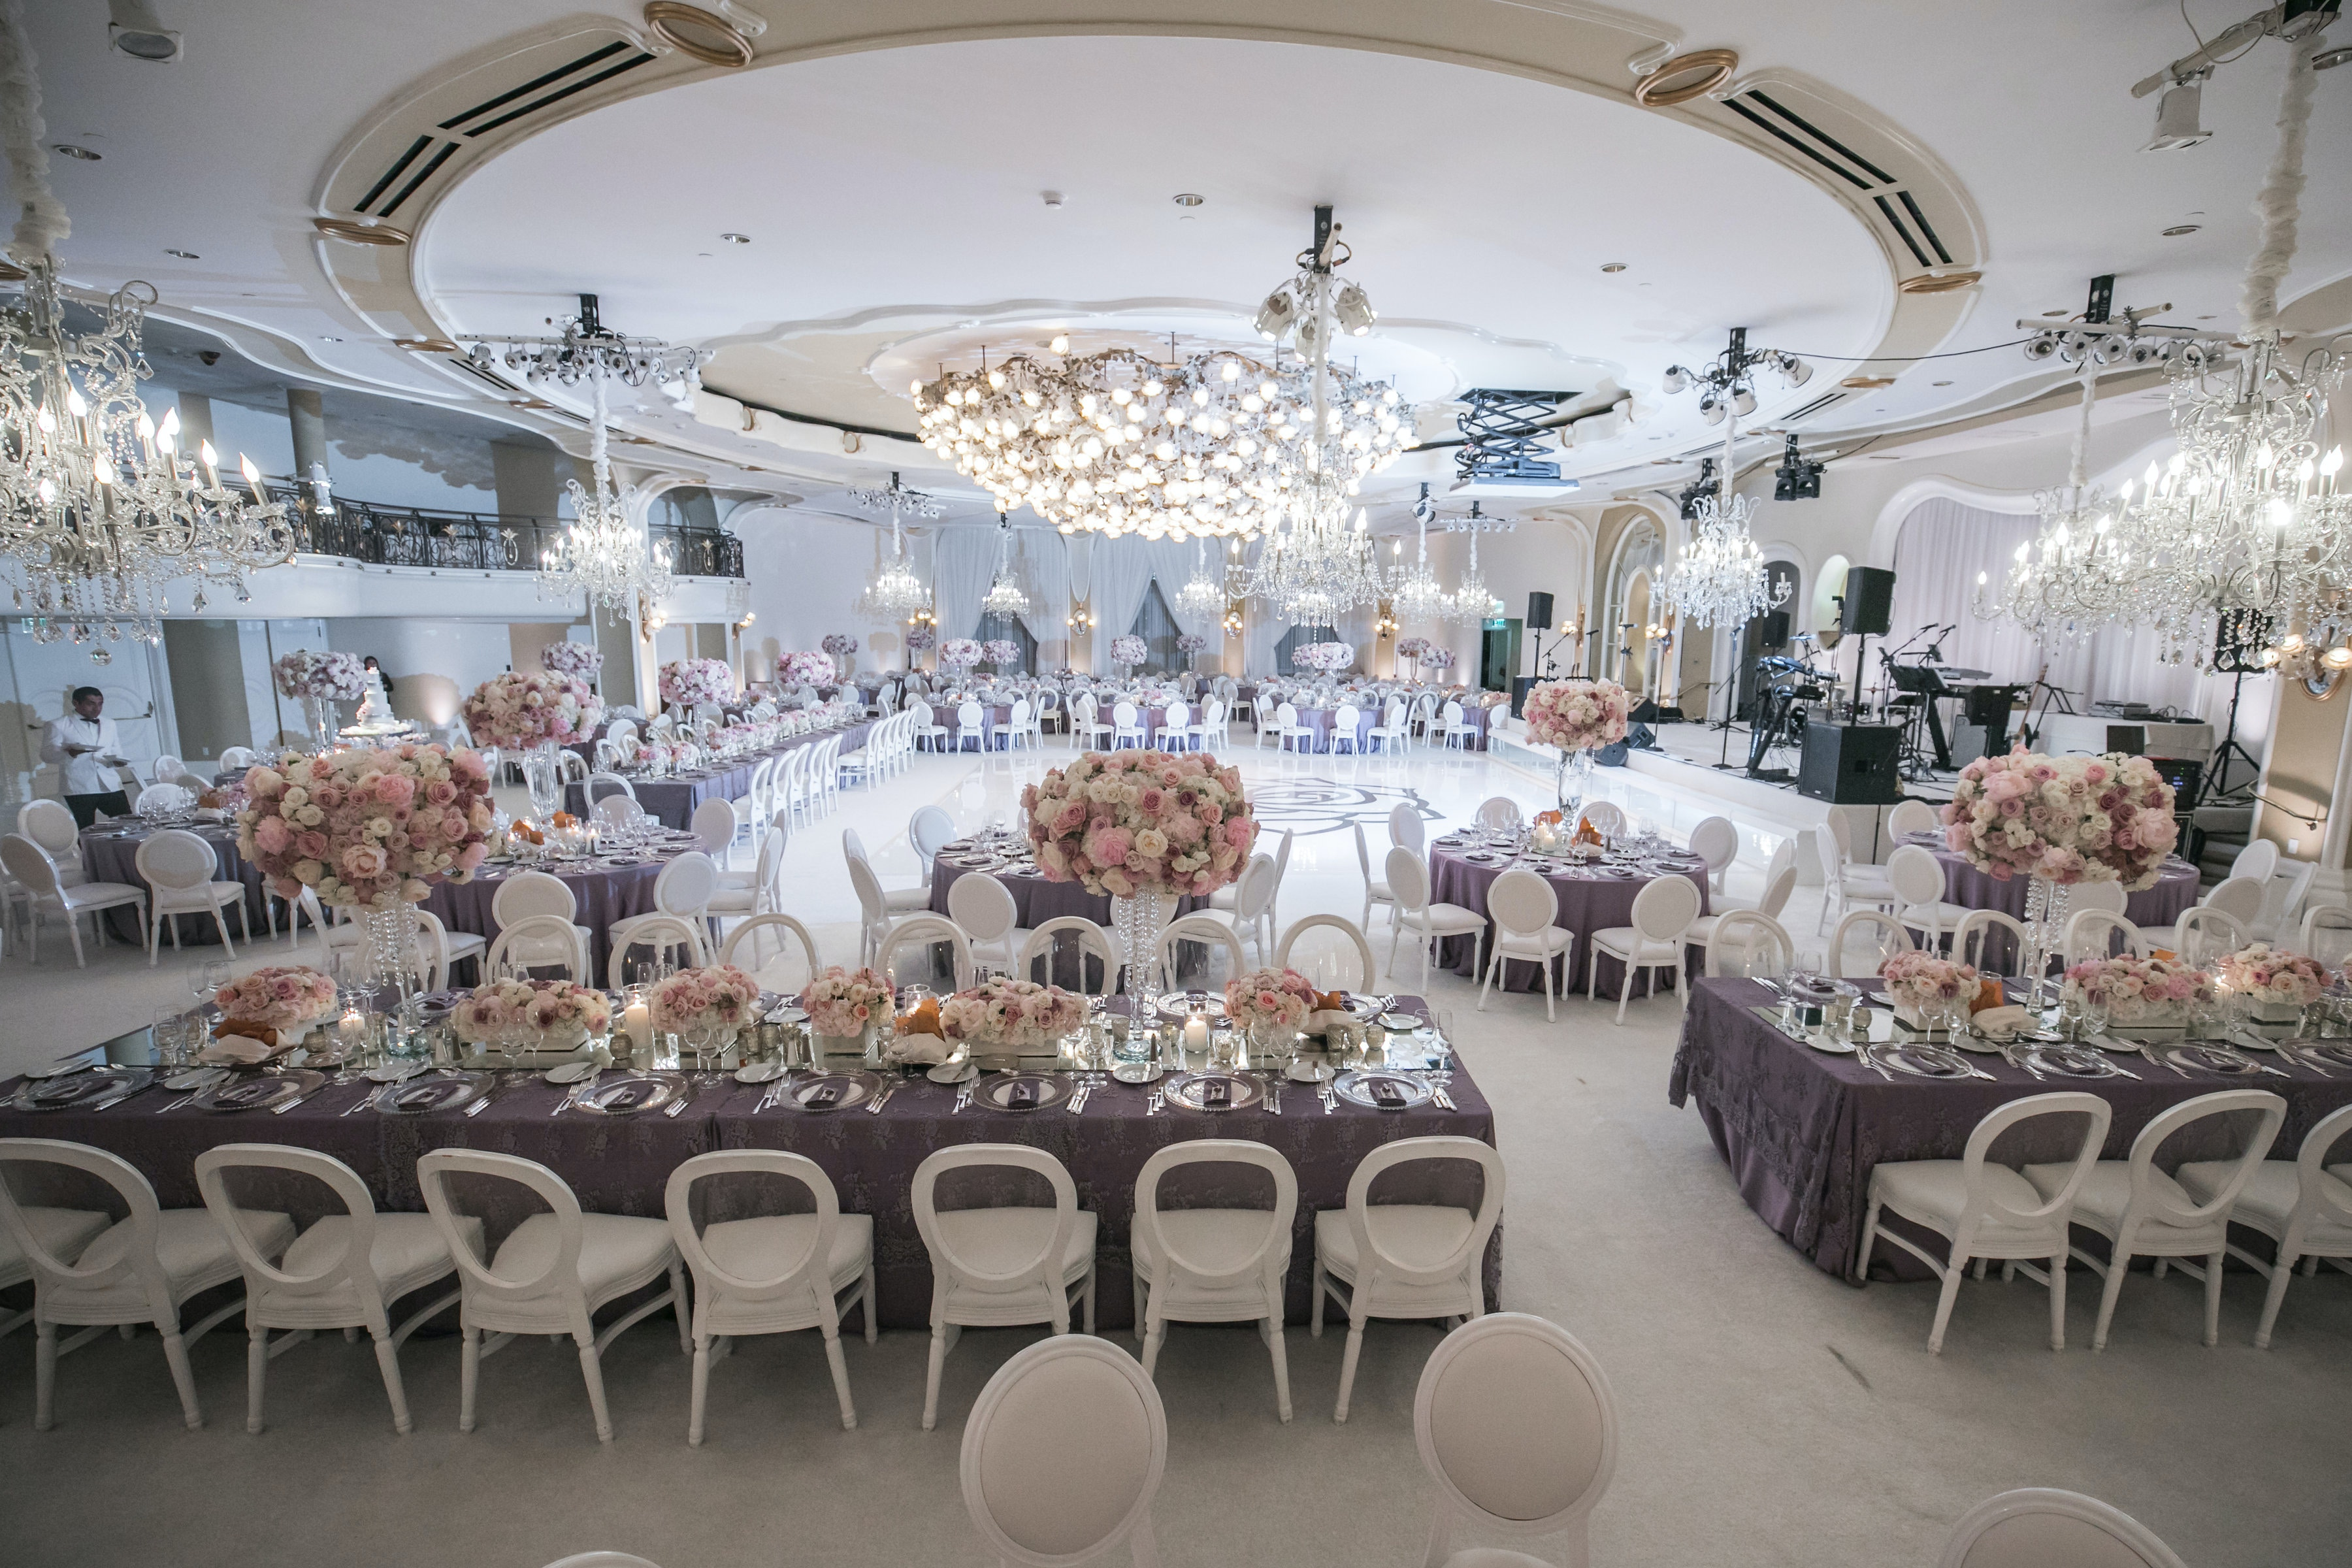 Posted by Nisie's Enchanted Florist - A Design/Decor/Floral professional